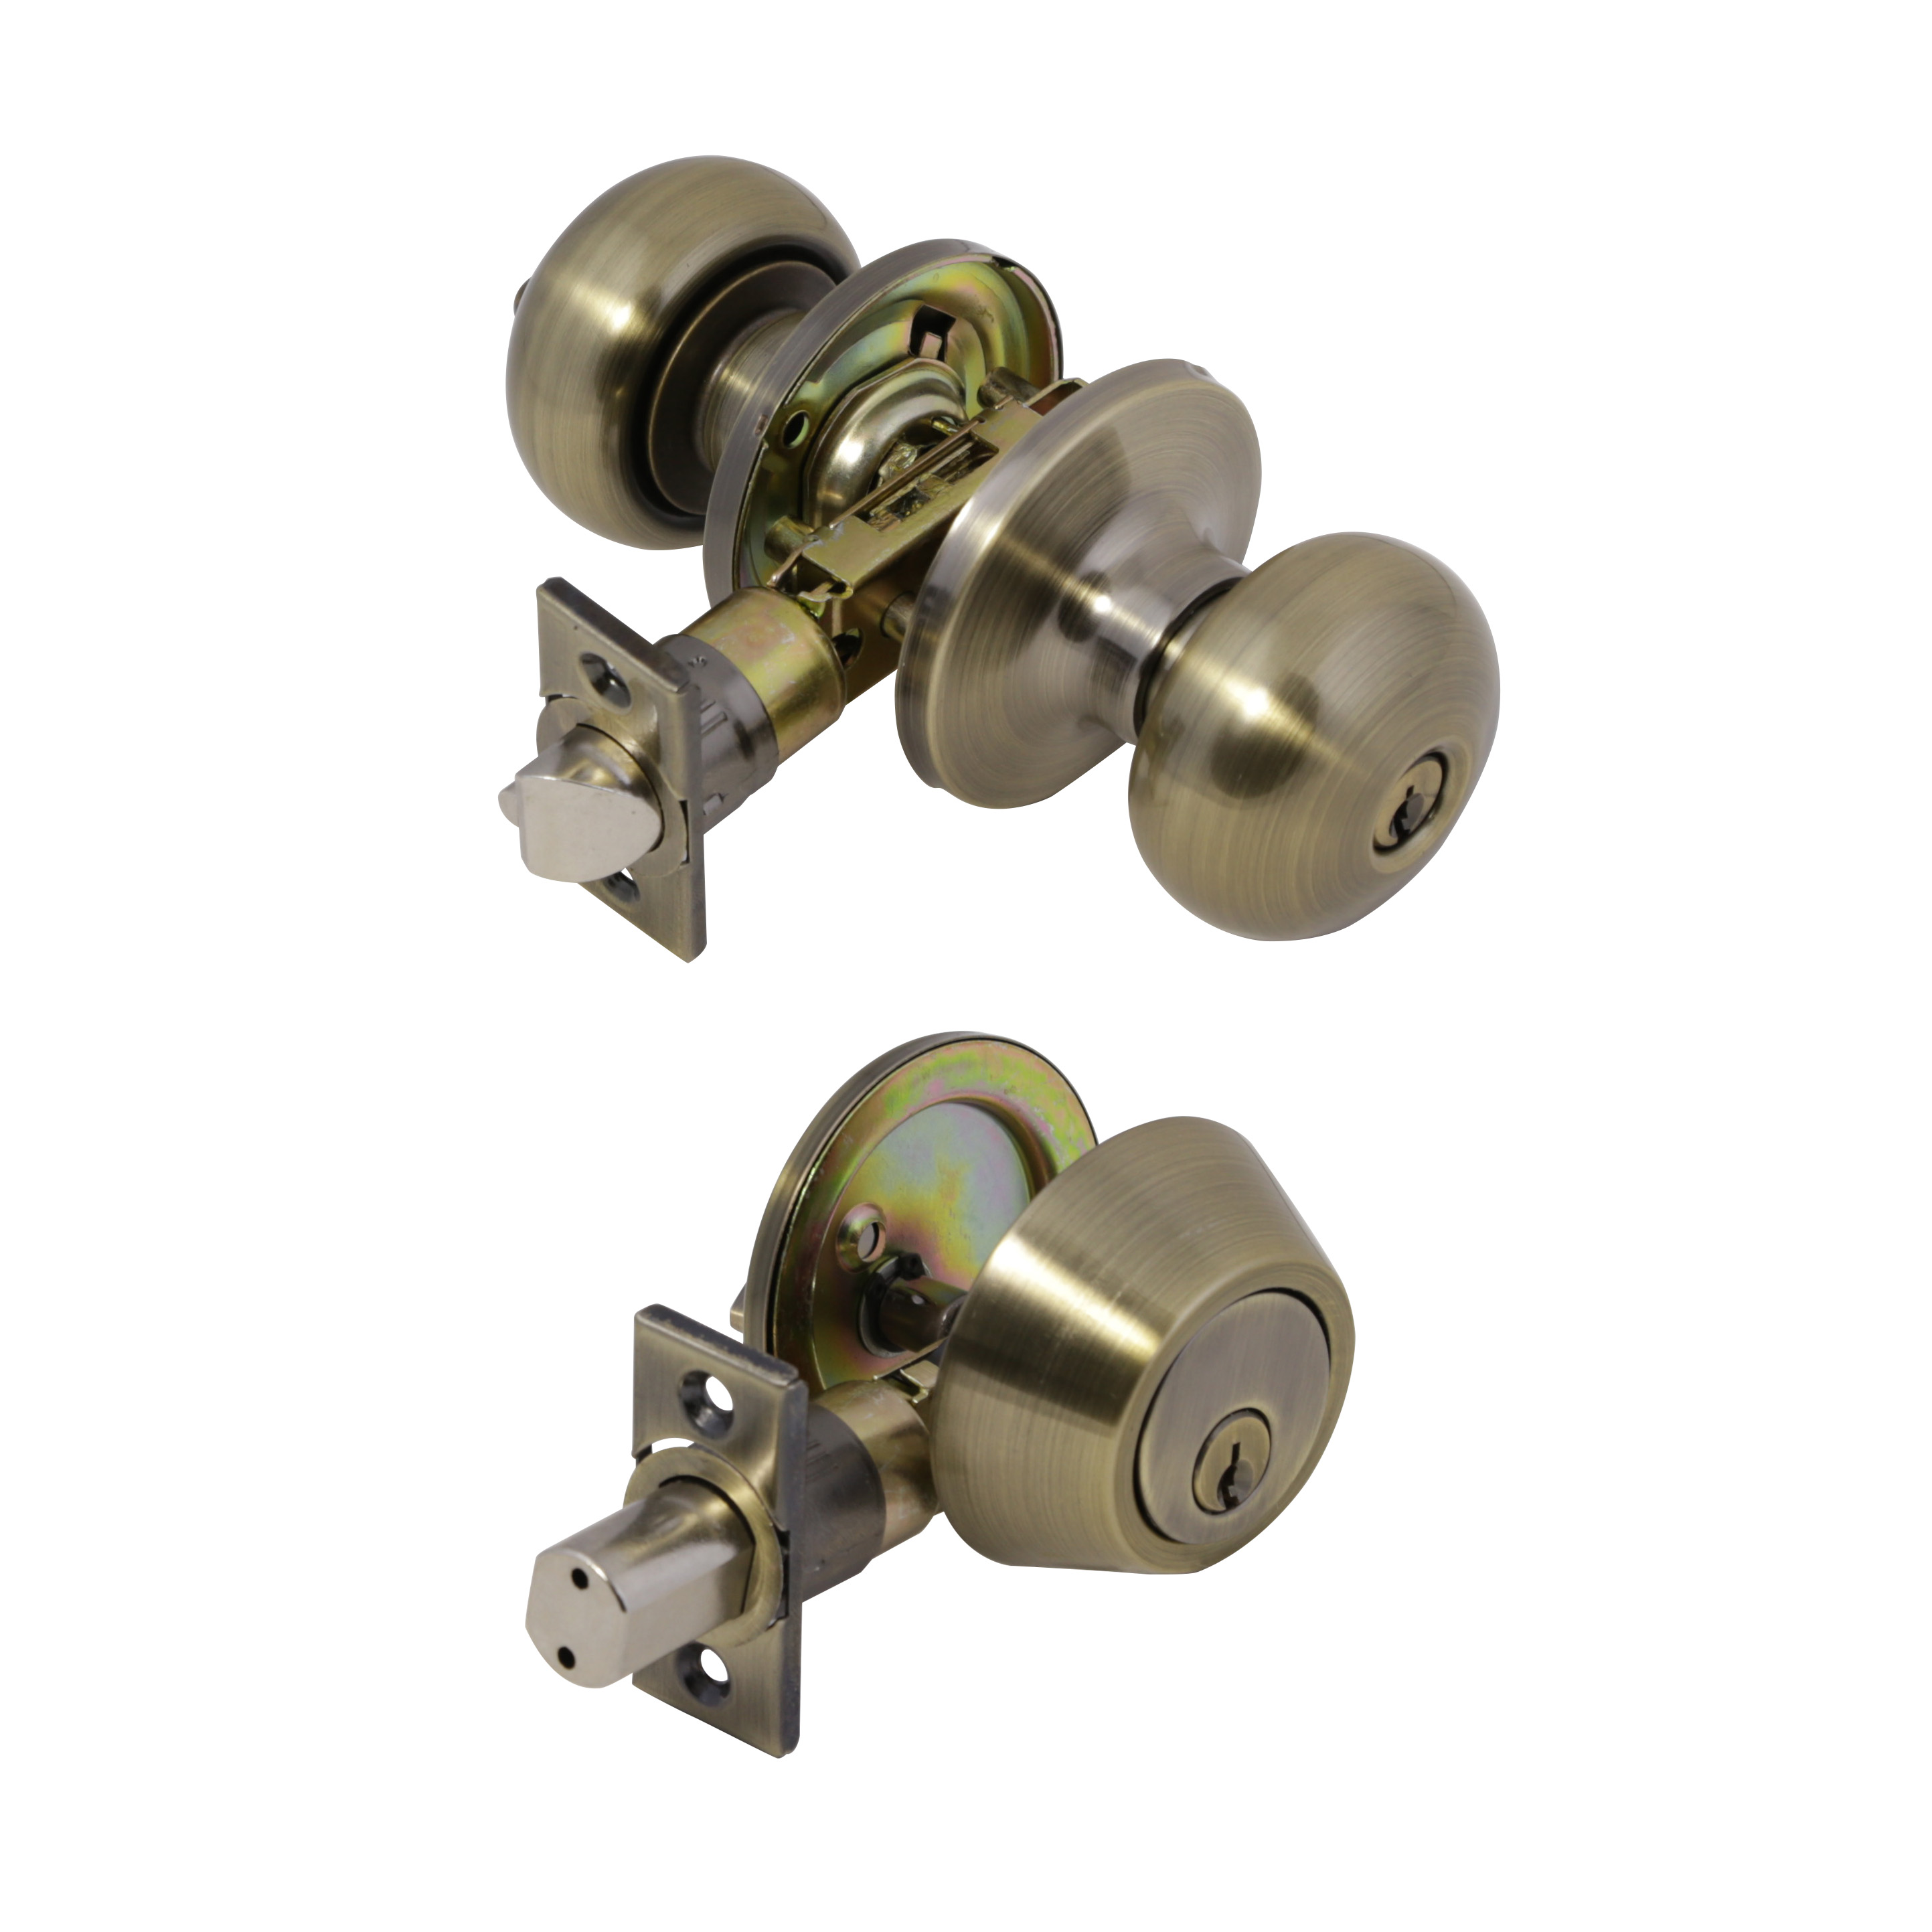 Design House 727297 6-Way Universal Canton Entry Combo Knob, Antique Brass